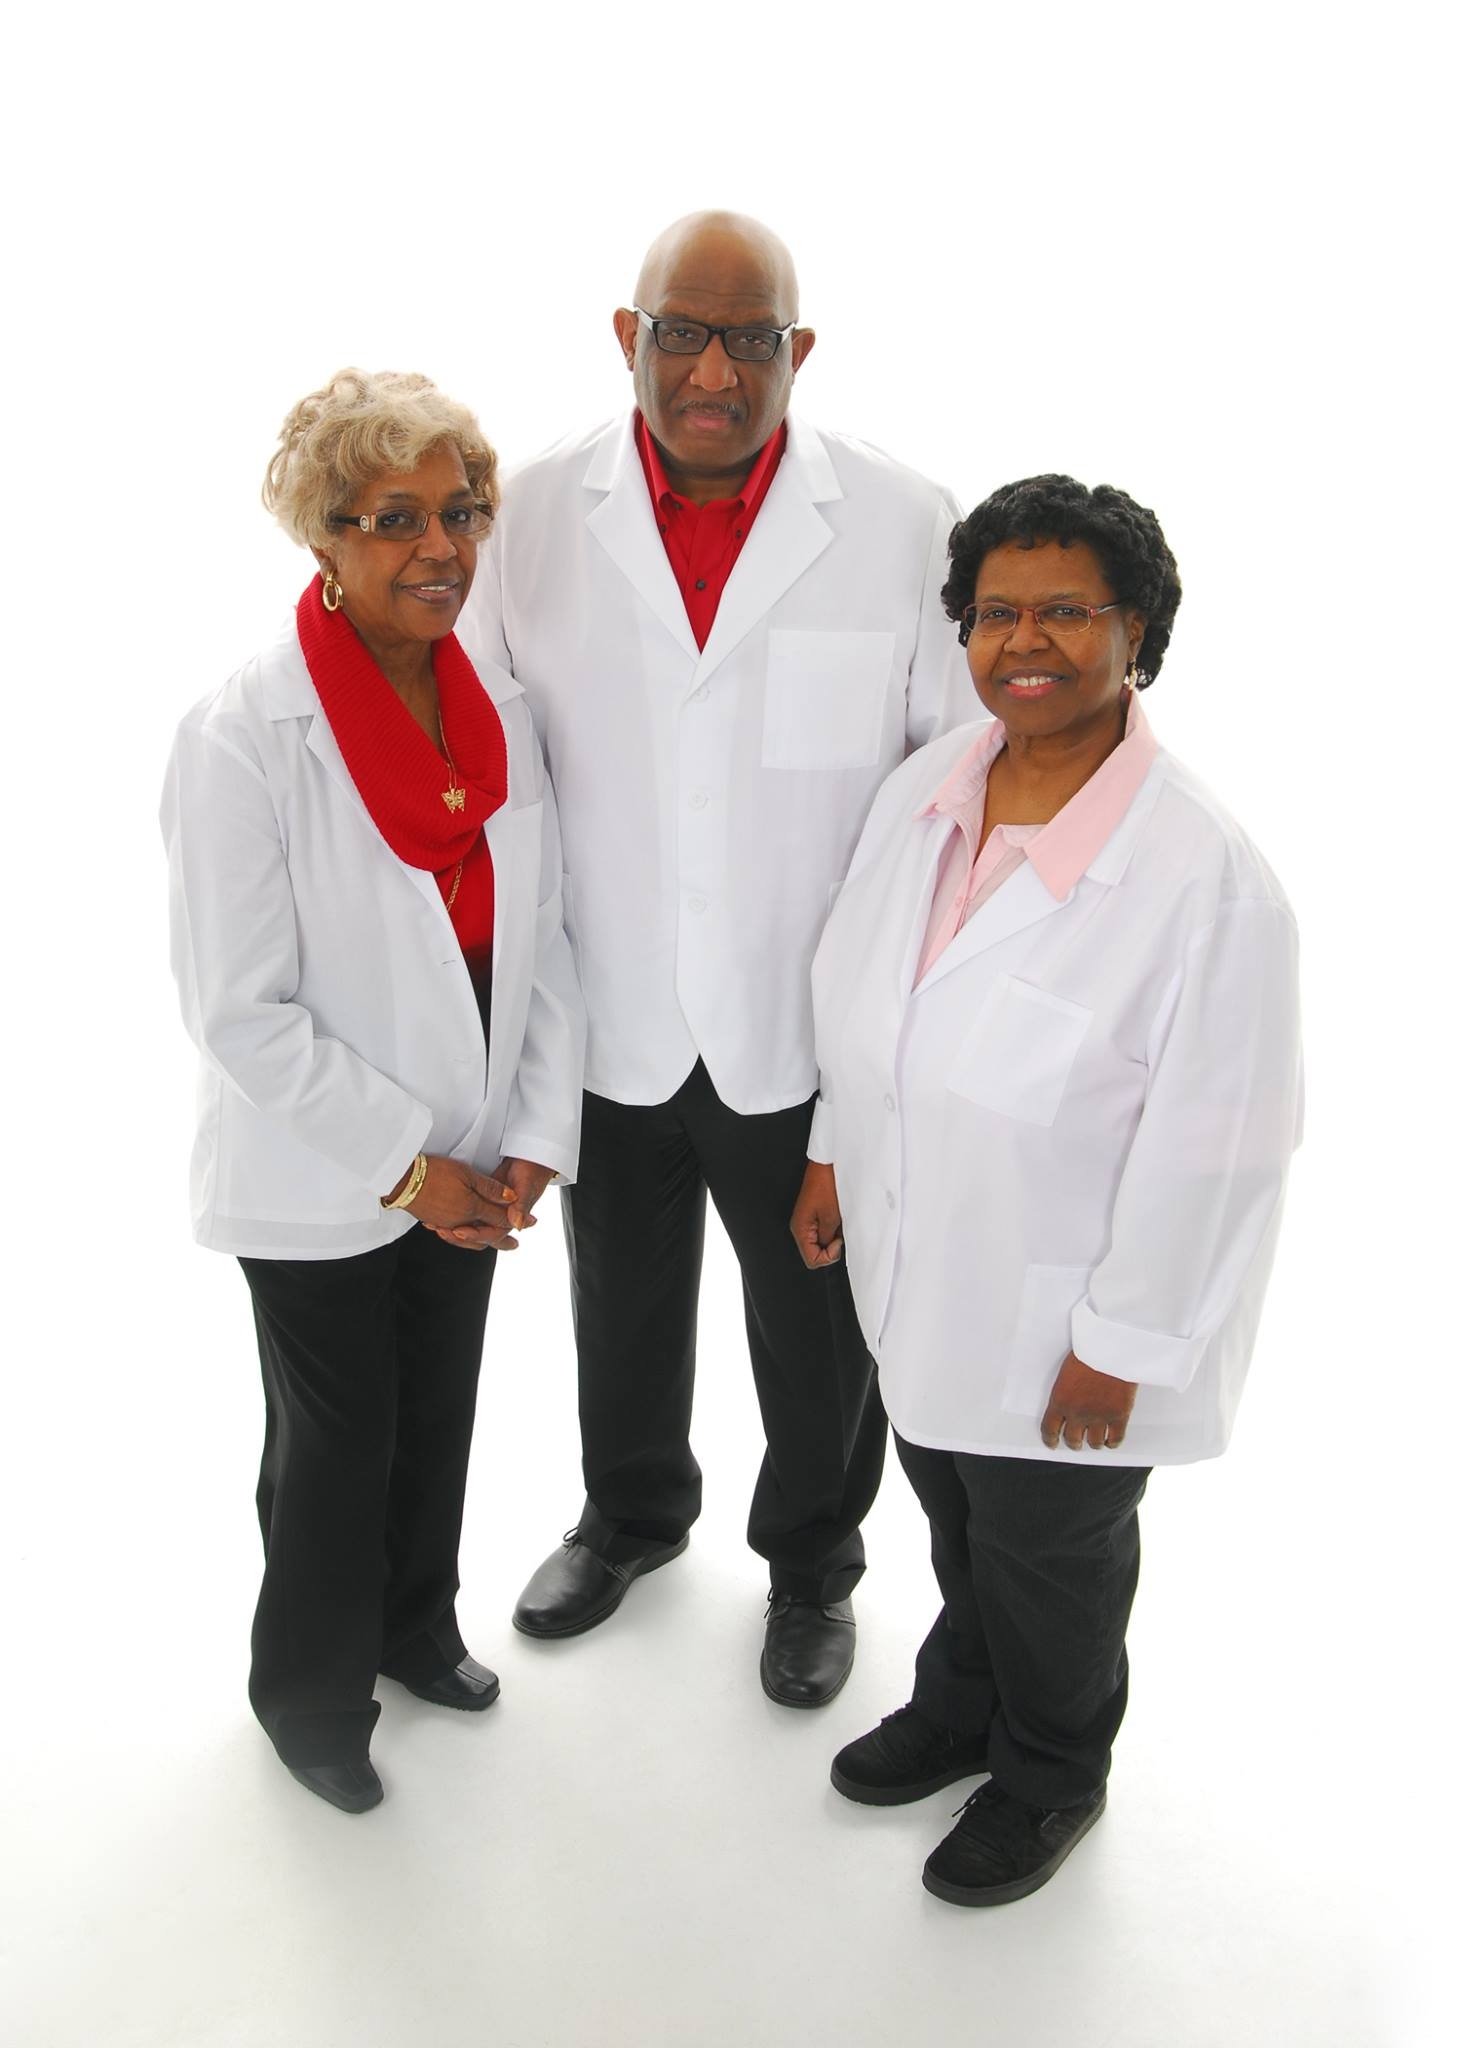 Carolyn Patterson, Darwin Smith Sr., and Cynthia Smith (from left to right)